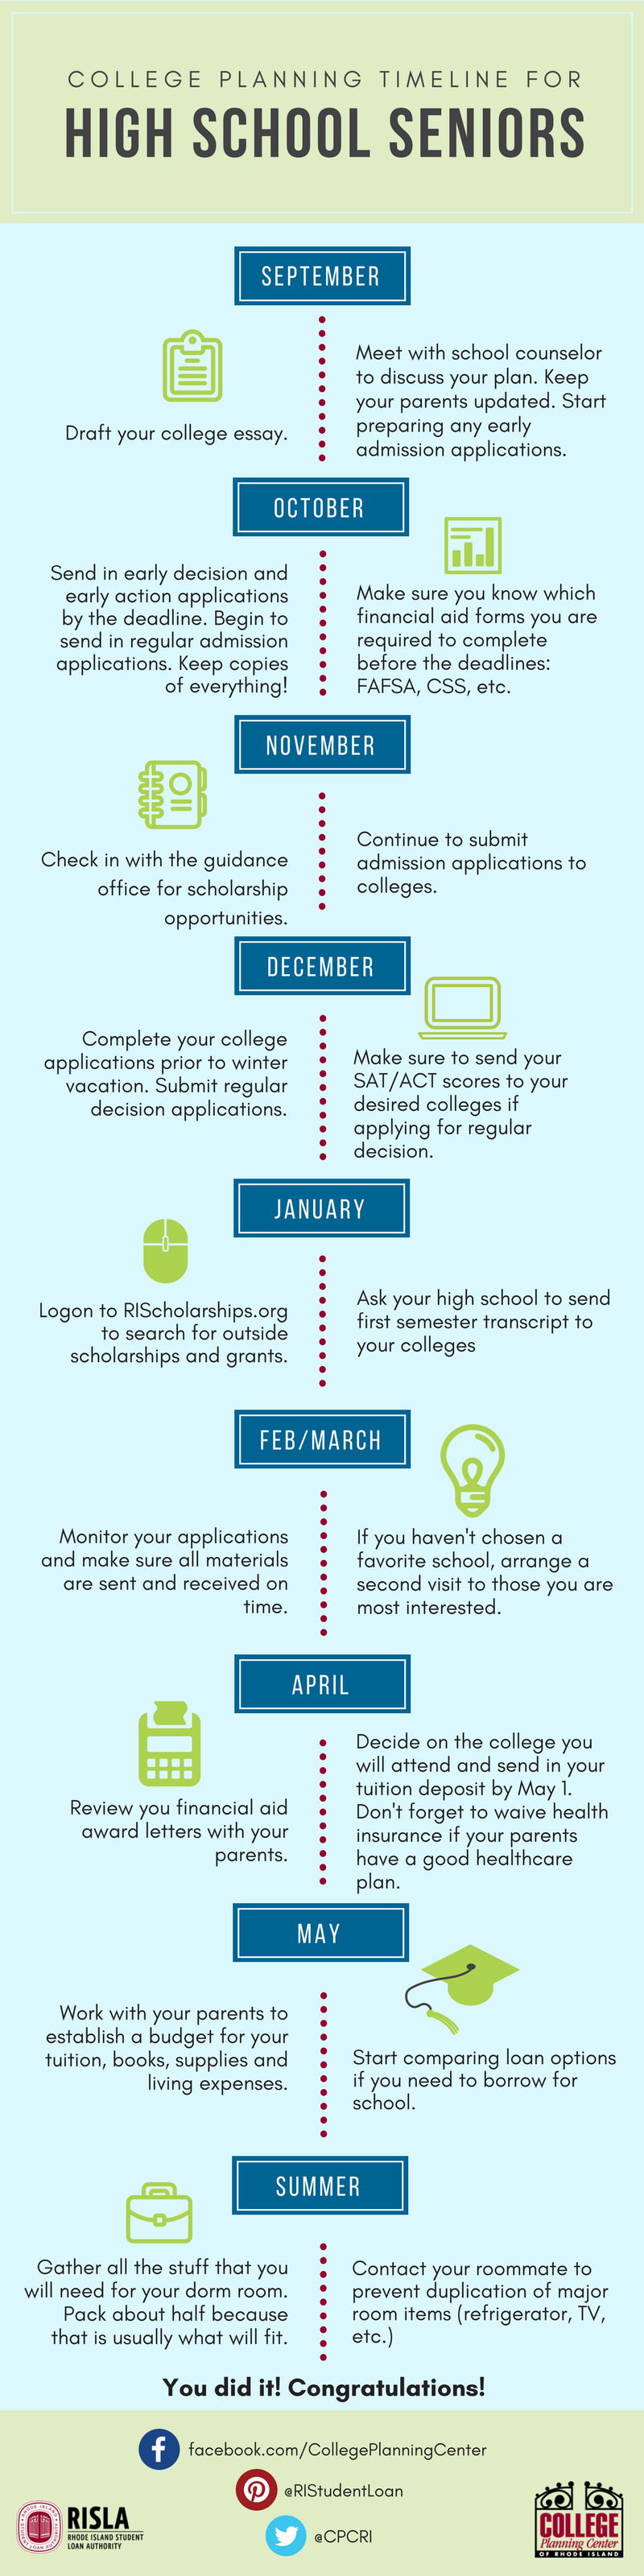 College Planning for High School Seniors